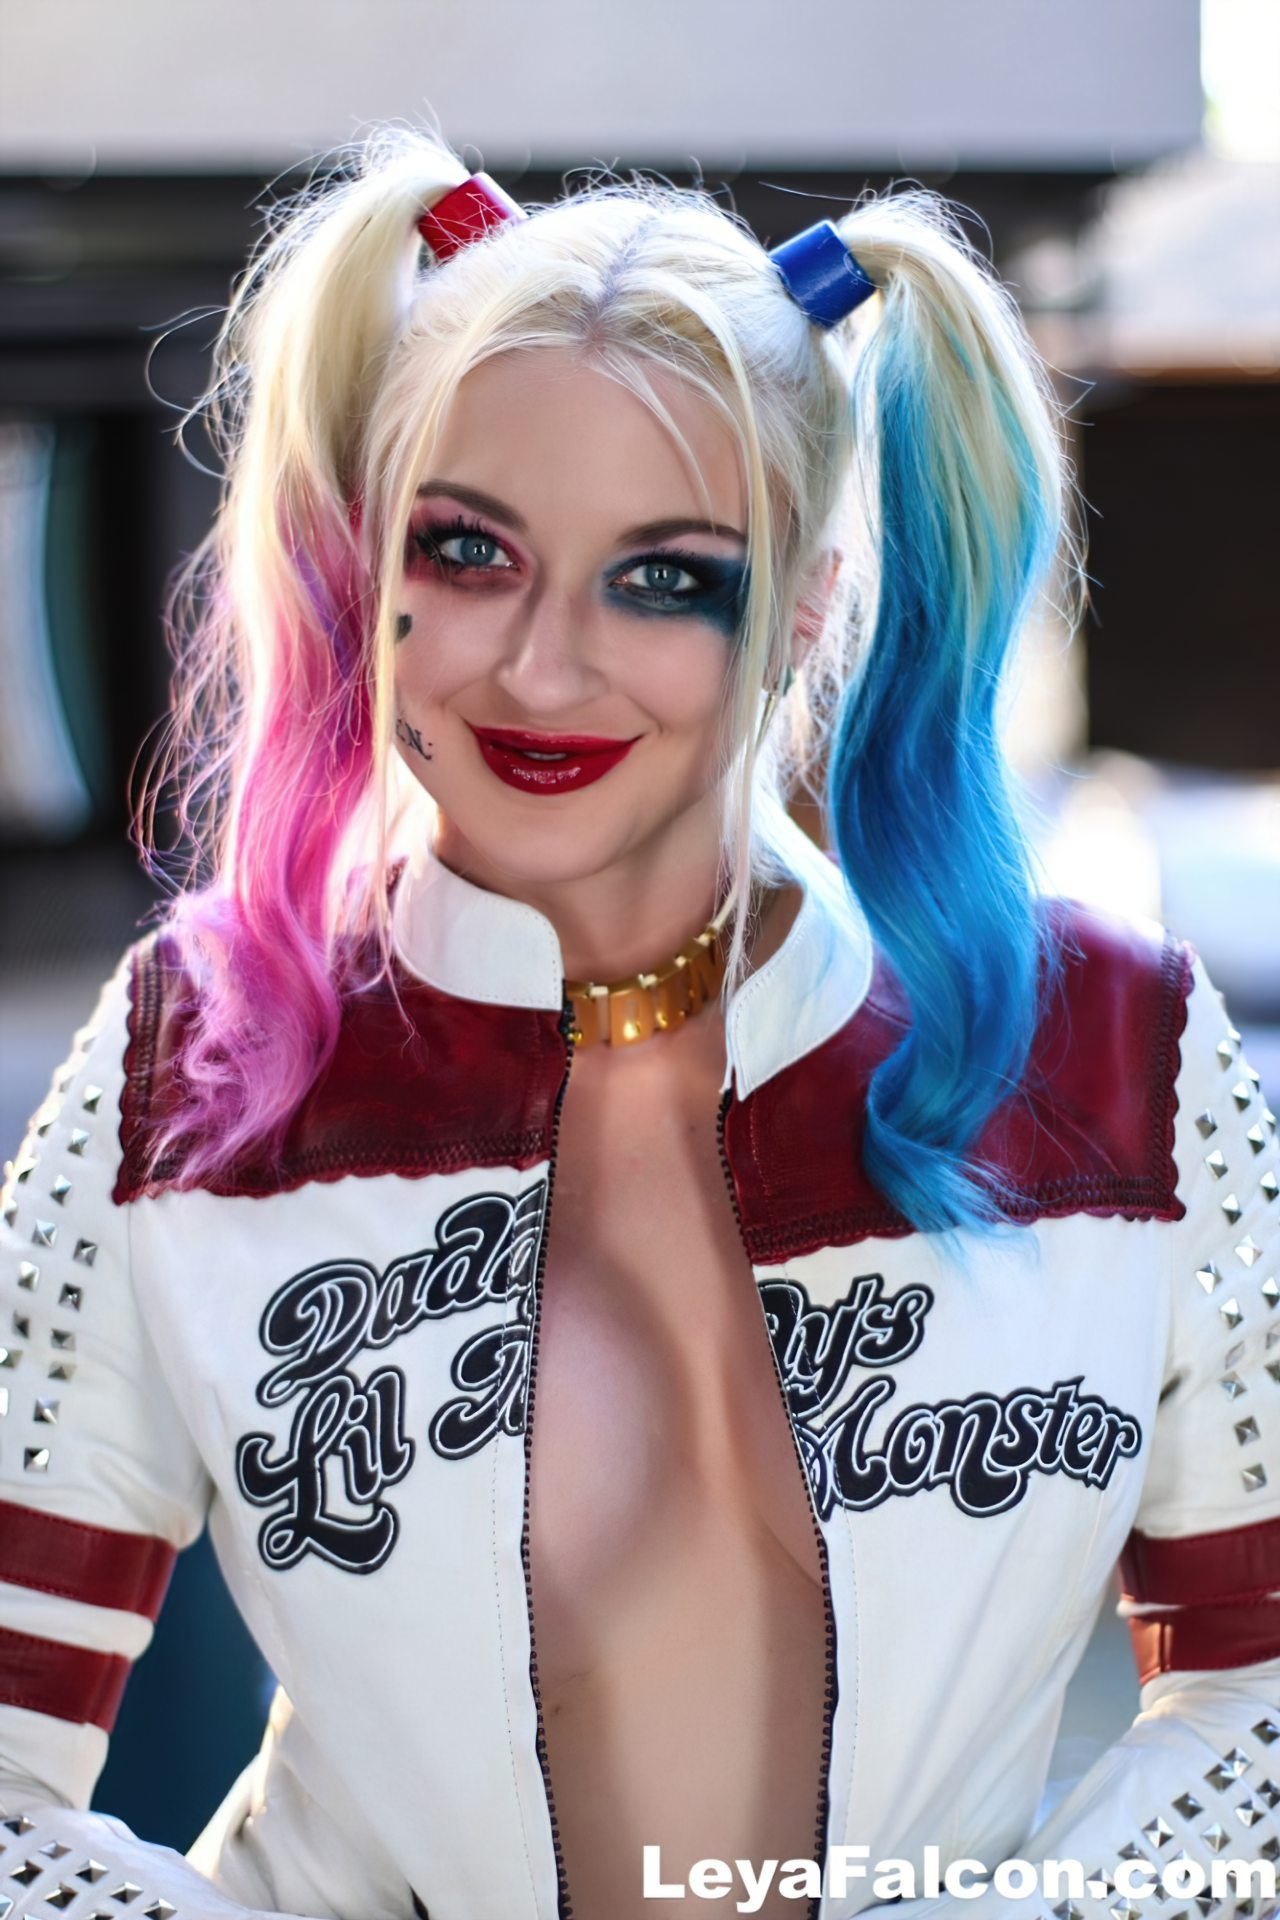 Suicide Squad Girl Cosplay (4)